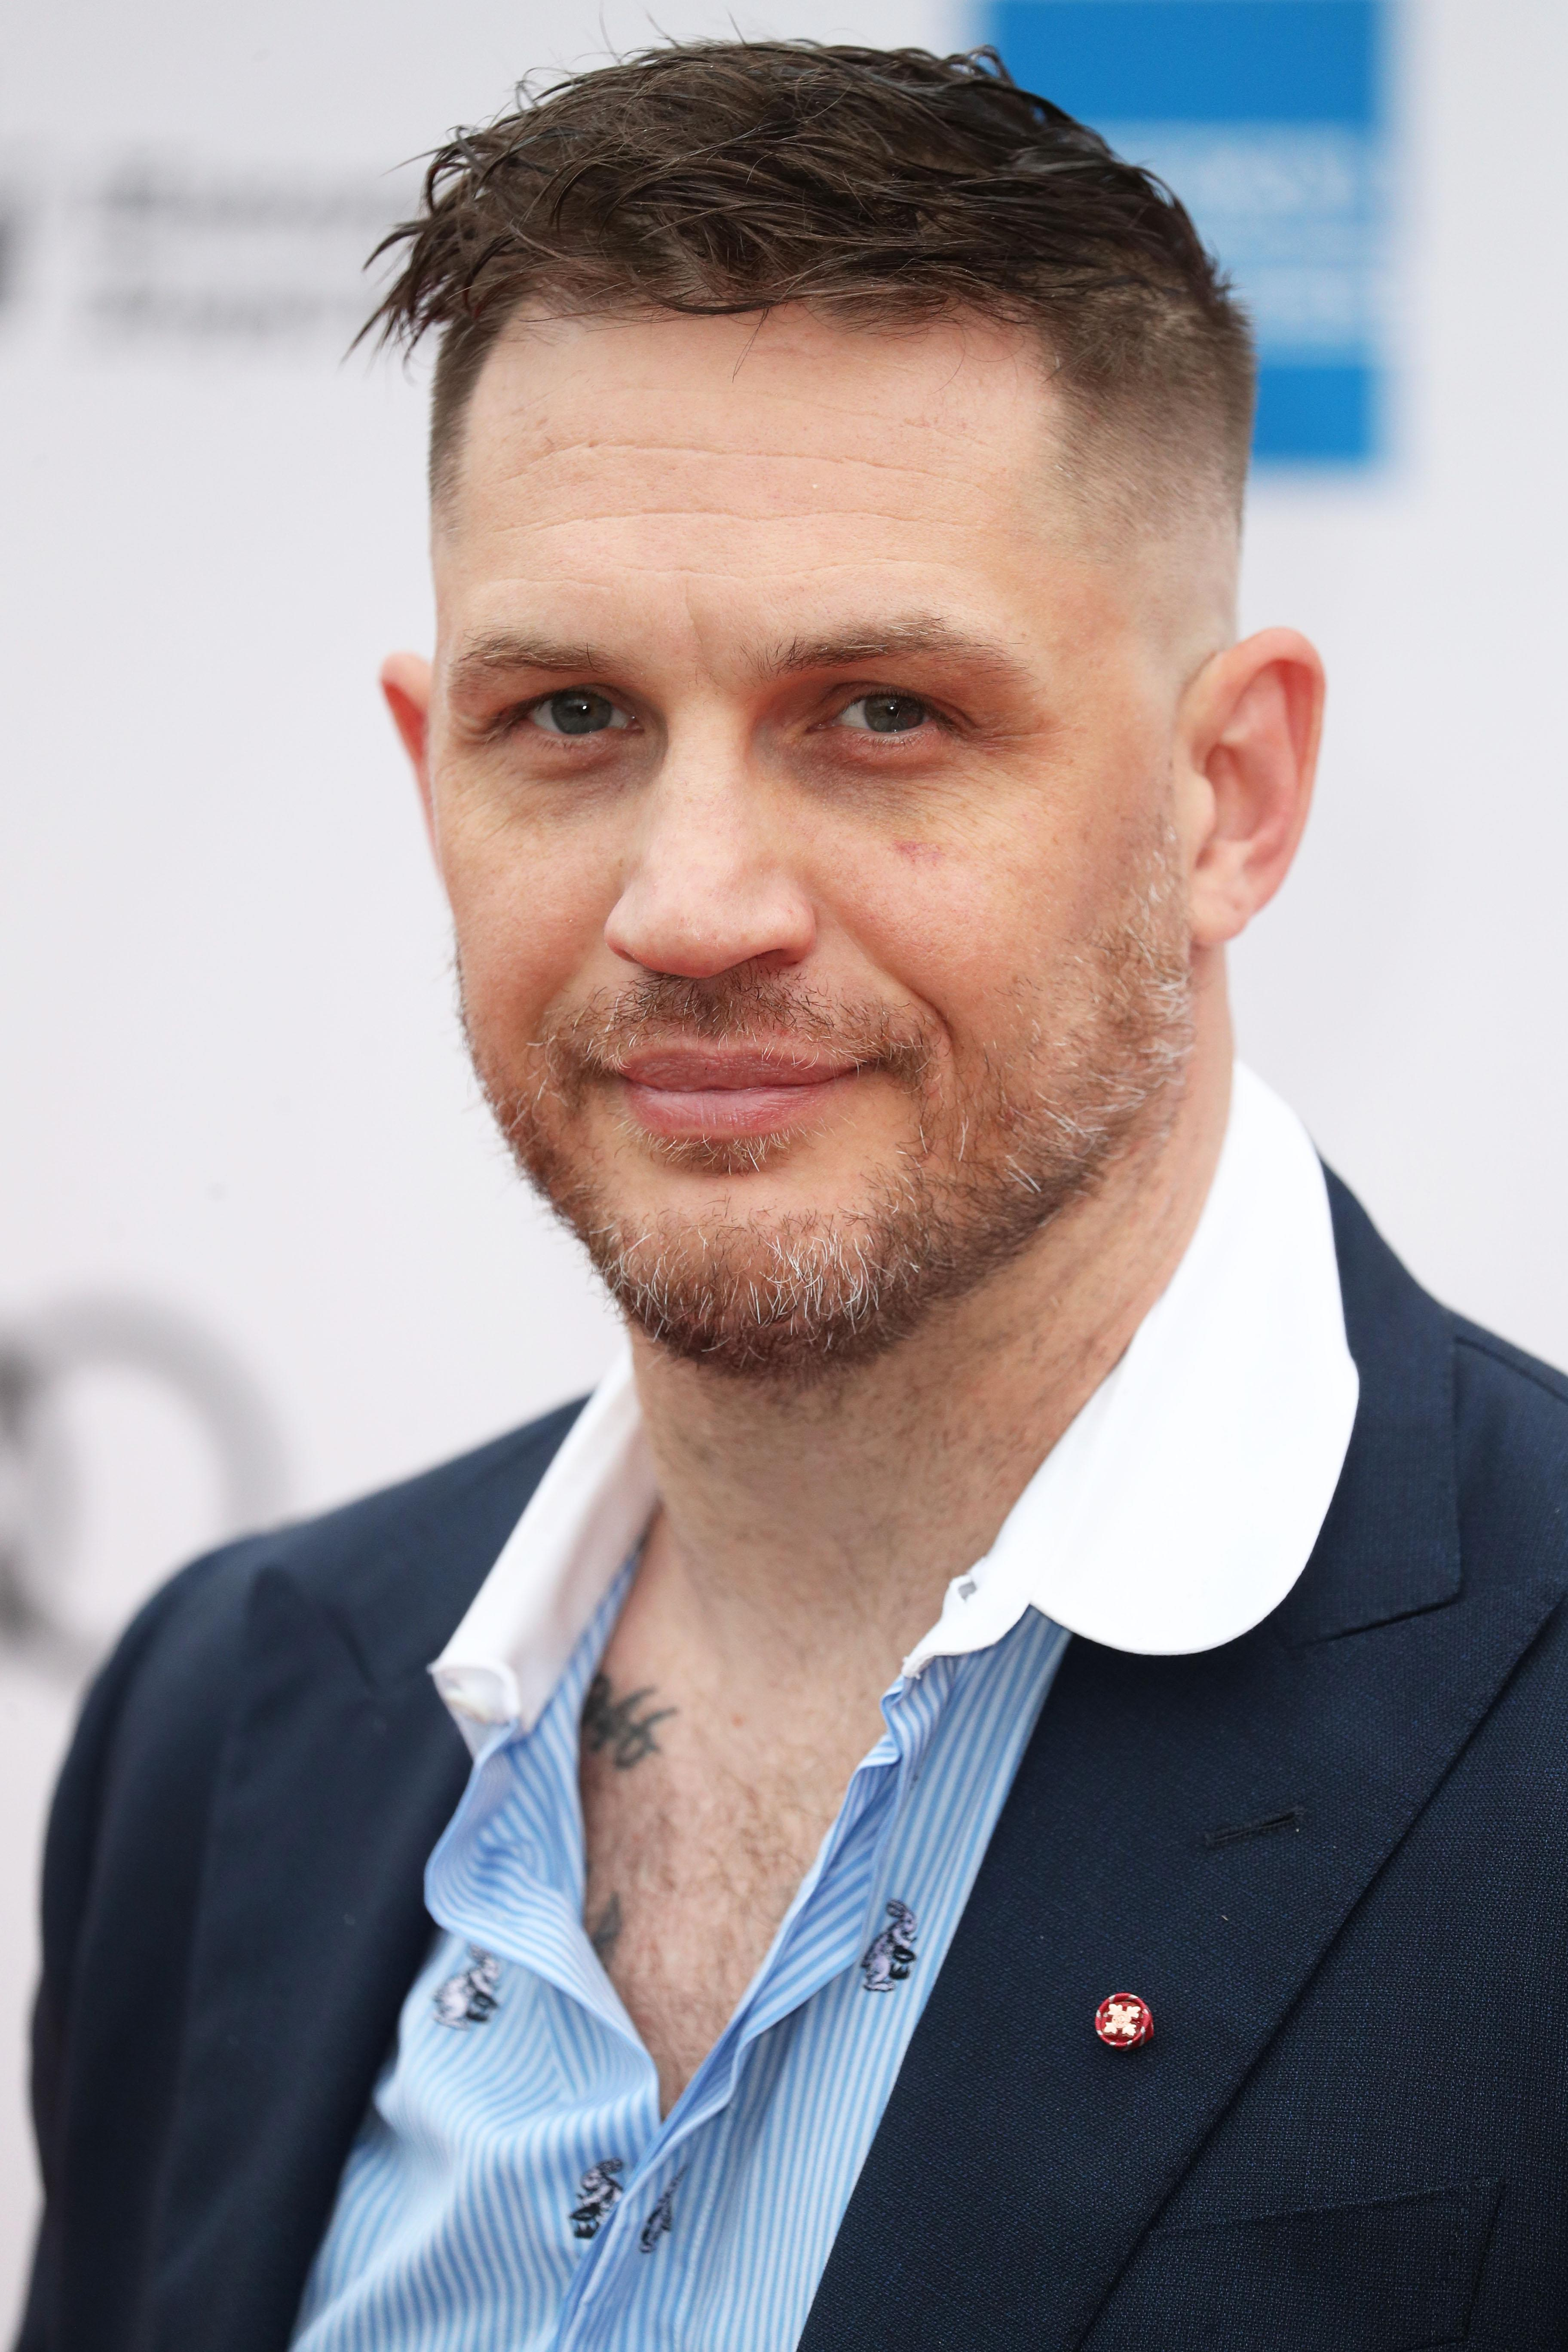 Tom Hardy arrives for a concert hosted by Sentebale in Hampton Court Palace in East Molesey, to raise awareness and vital funds for the Duke of Sussex's charity, Sentebale, which helps young people in southern Africa affected by HIV.